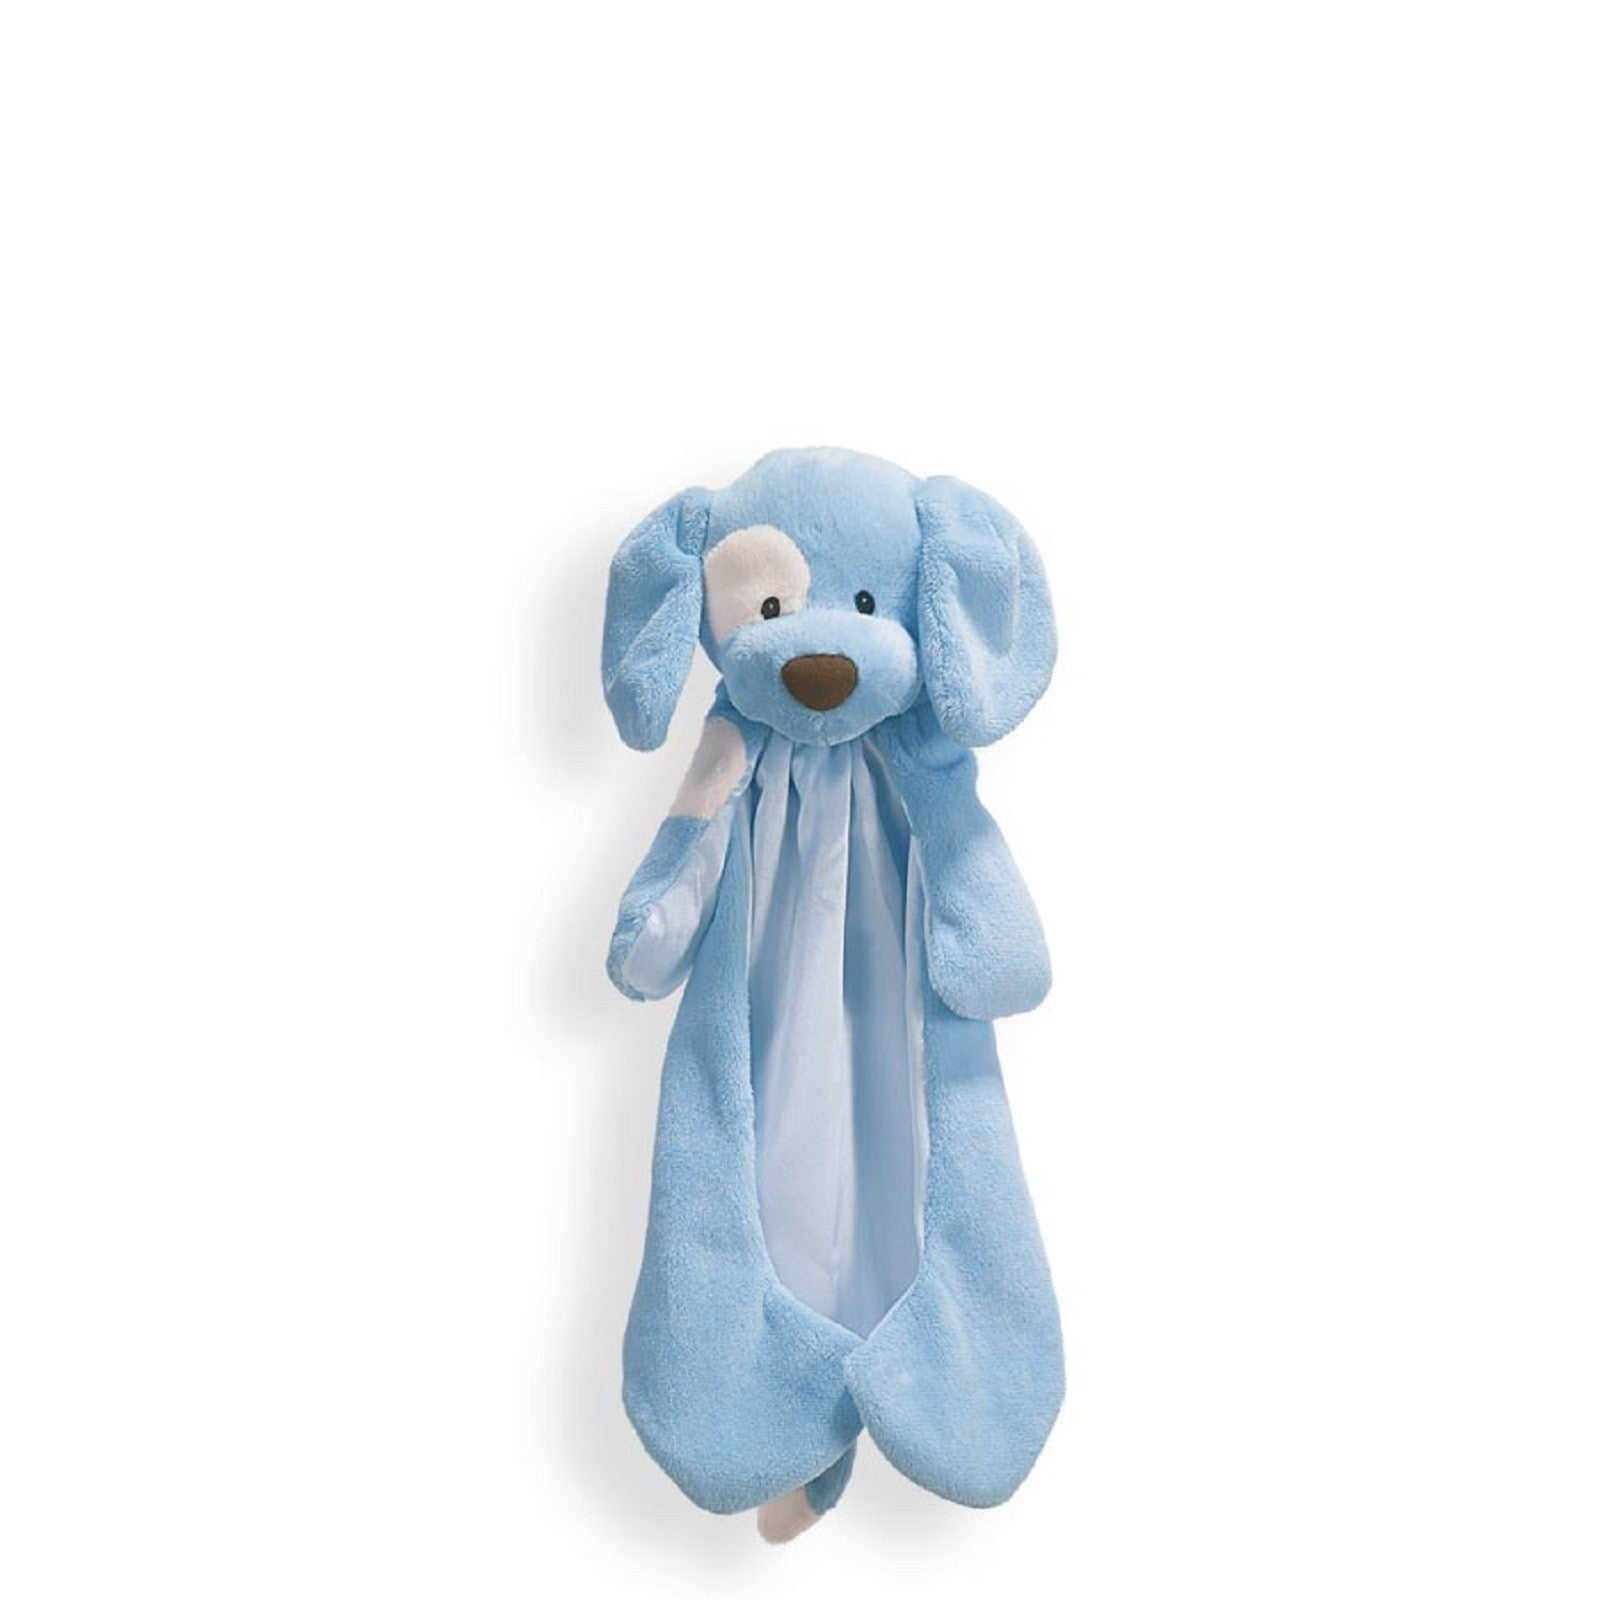 "Baby Gund - Spunky Huggybuddy - 18"" in 4 Colors"